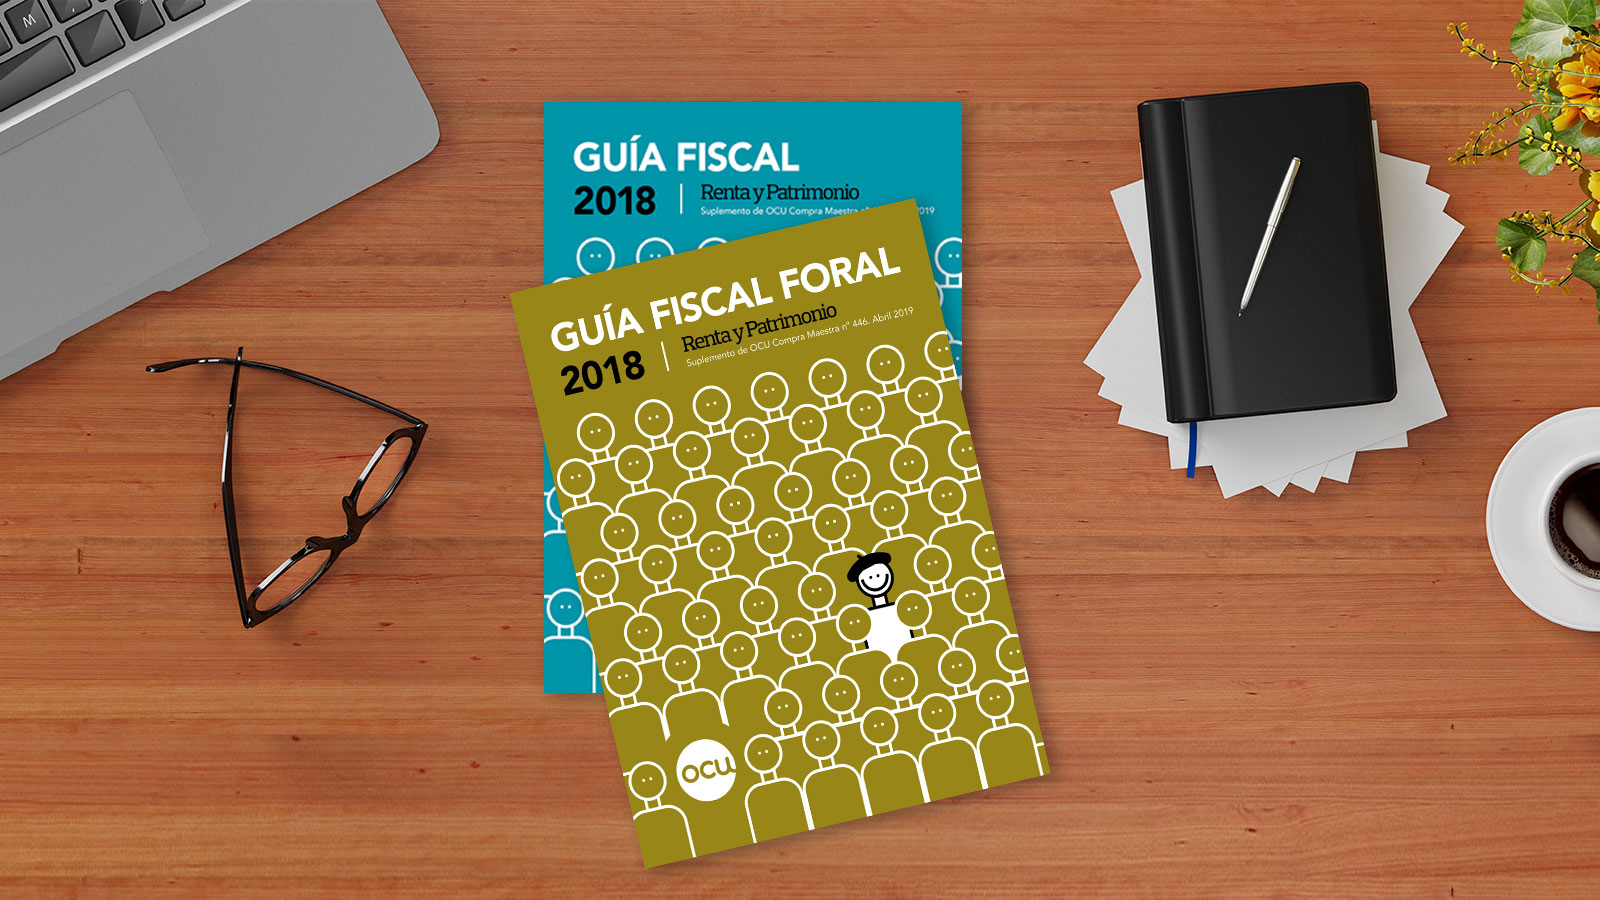 guía fiscal foral